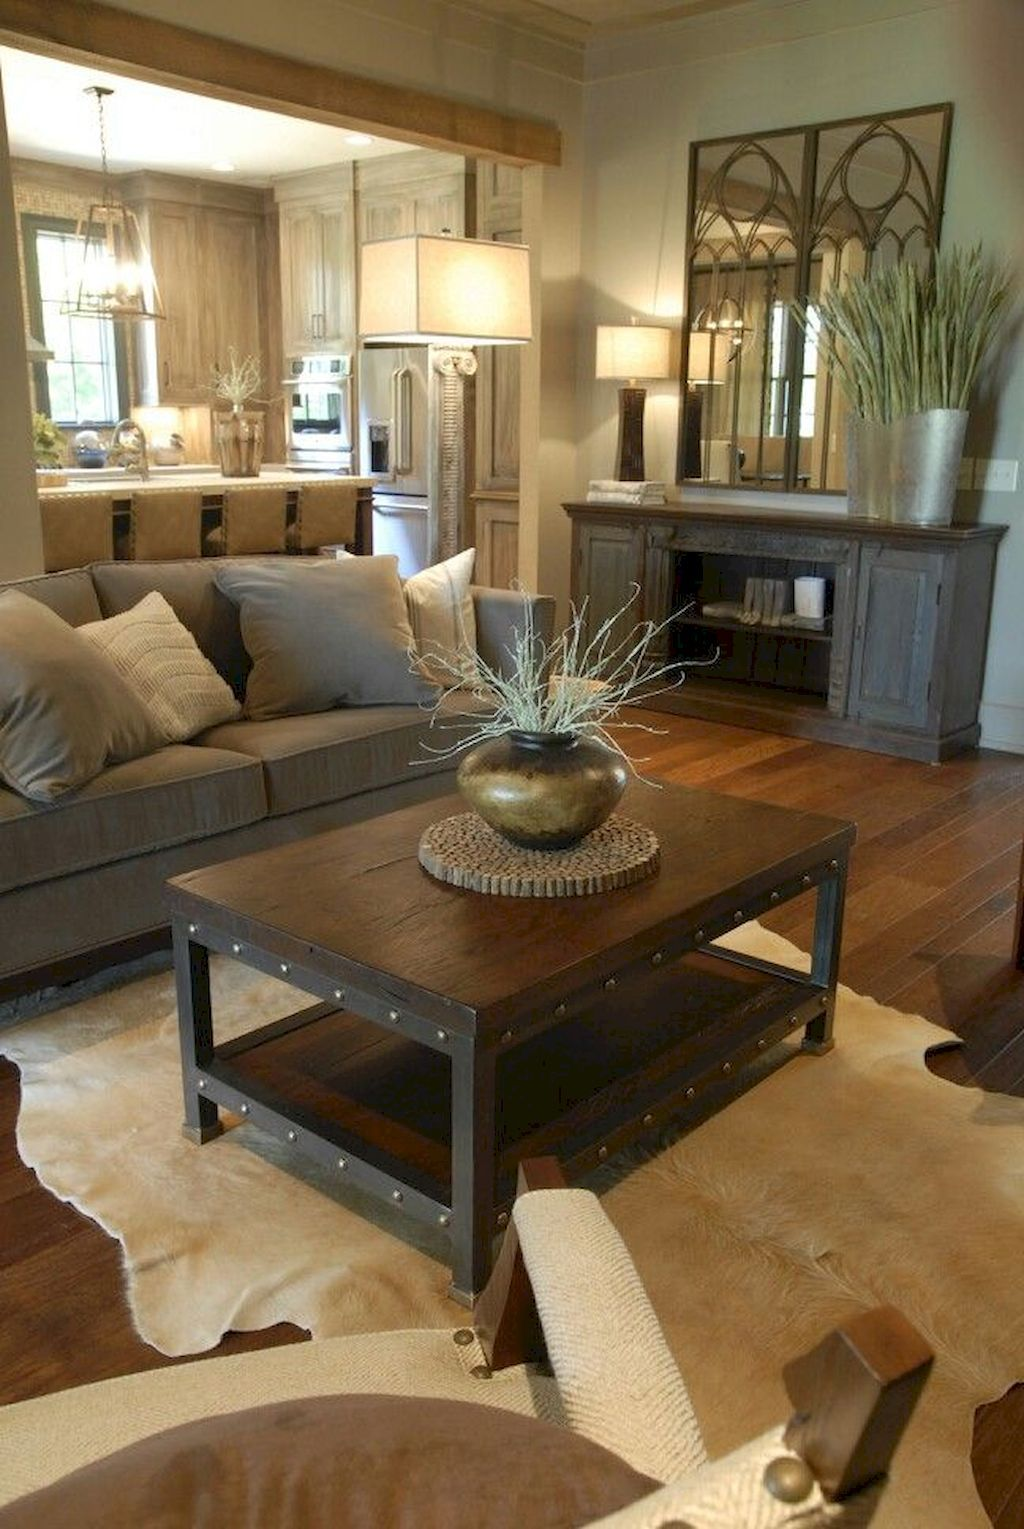 75 Warm And Cozy Farmhouse Style Living Room Decor Ideas With